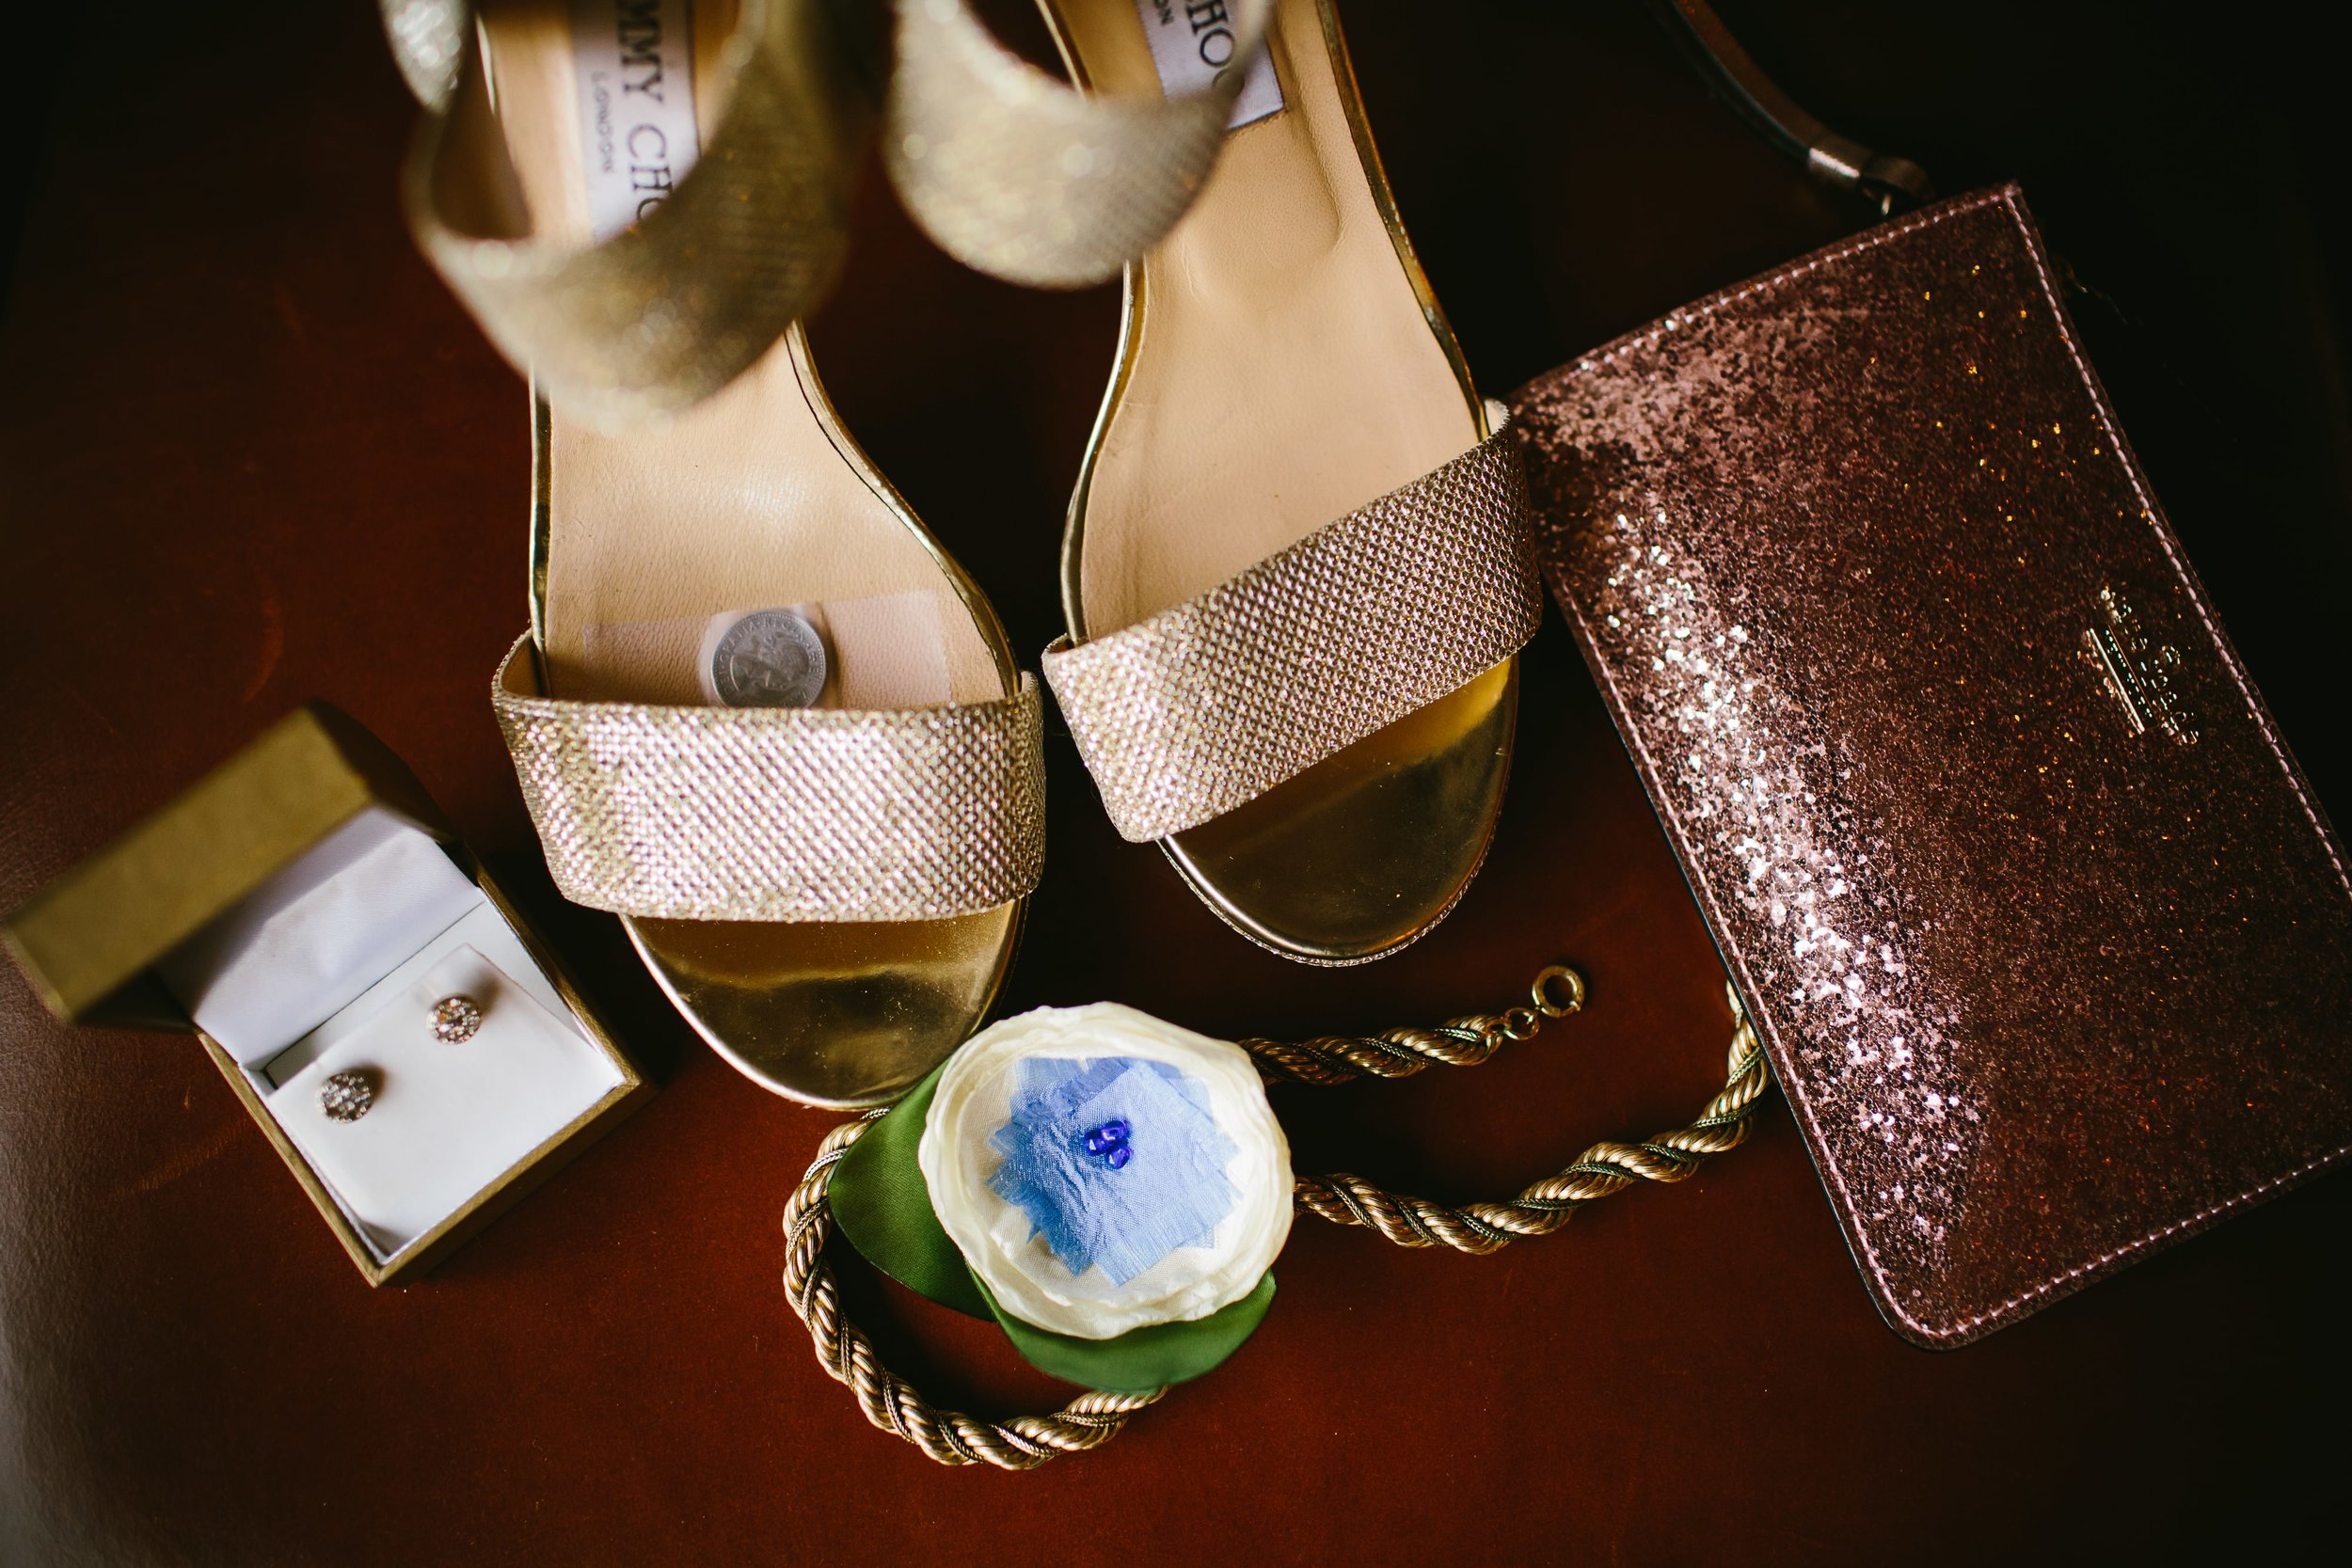 3 My Old New Borrowed Blue and Sixpence in her Jimmy Choo shoe